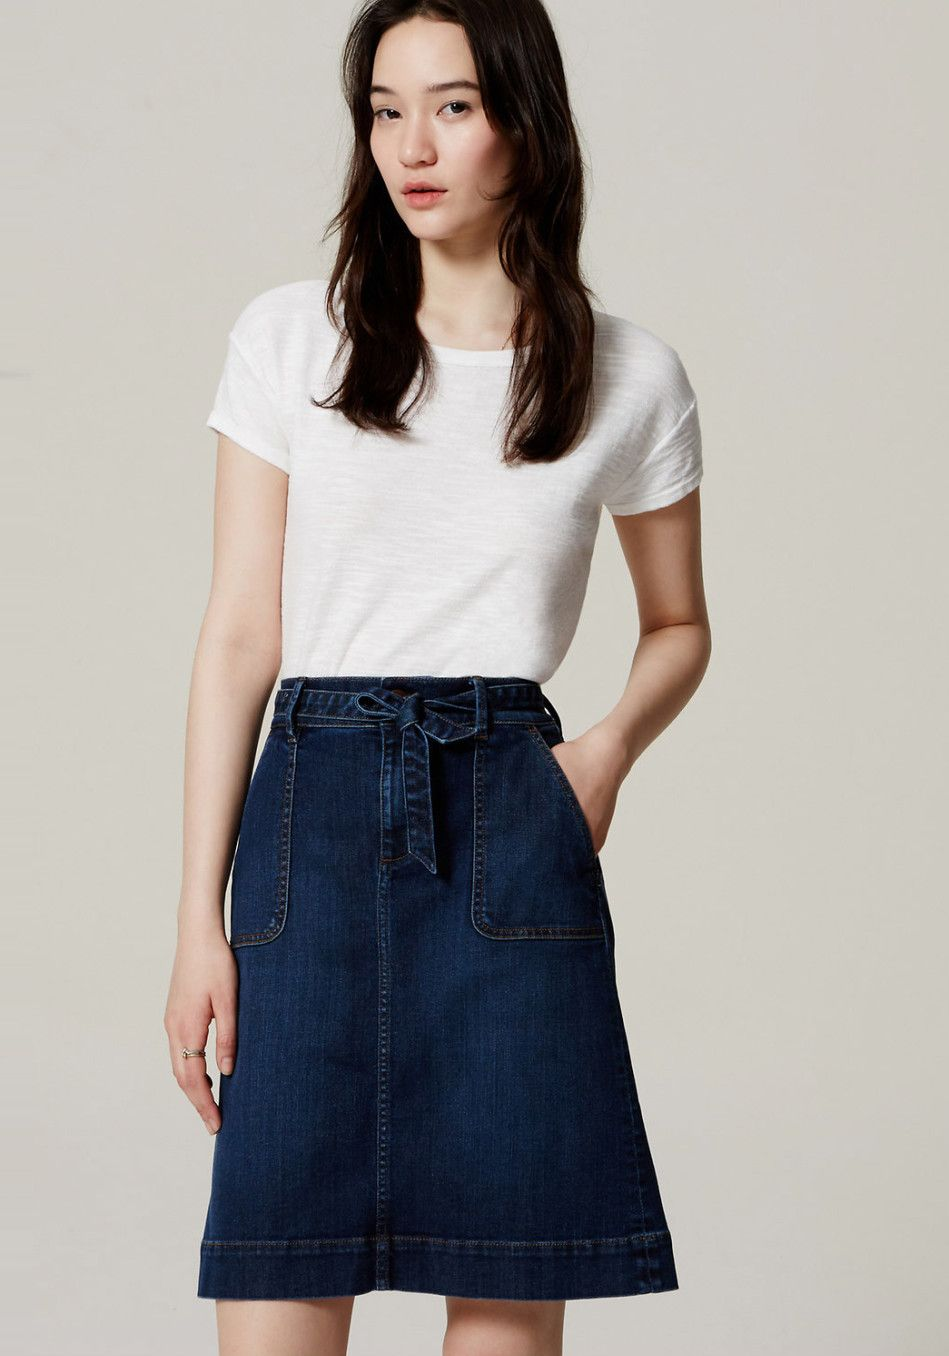 If it's time to give the ol' dark jeans a break from their weekly wardrobe rotation, enter this tie-waist skirt. Its casual A-line fit and just-above-the-knee length make it an easy alternative to your go-to denim.